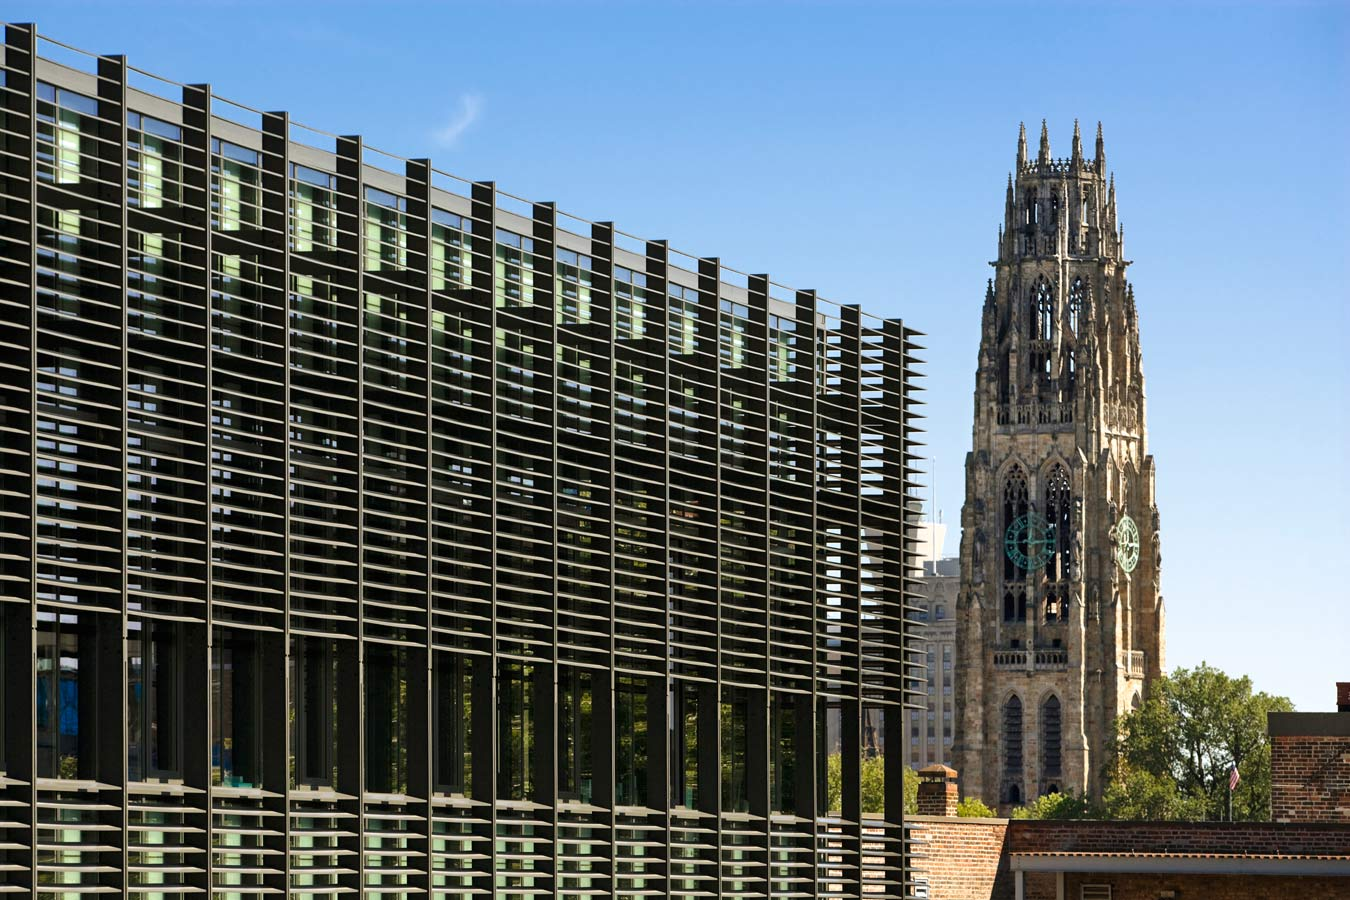 <p>The high-performance envelope of the sculpture building, designed to mitigate solar gain, creates the effect of an elegant contemporary gothic fenestration as seen against Yale's gothic structures beyond. <br><small>&copy; Peter Aaron/OTTO</small></p>